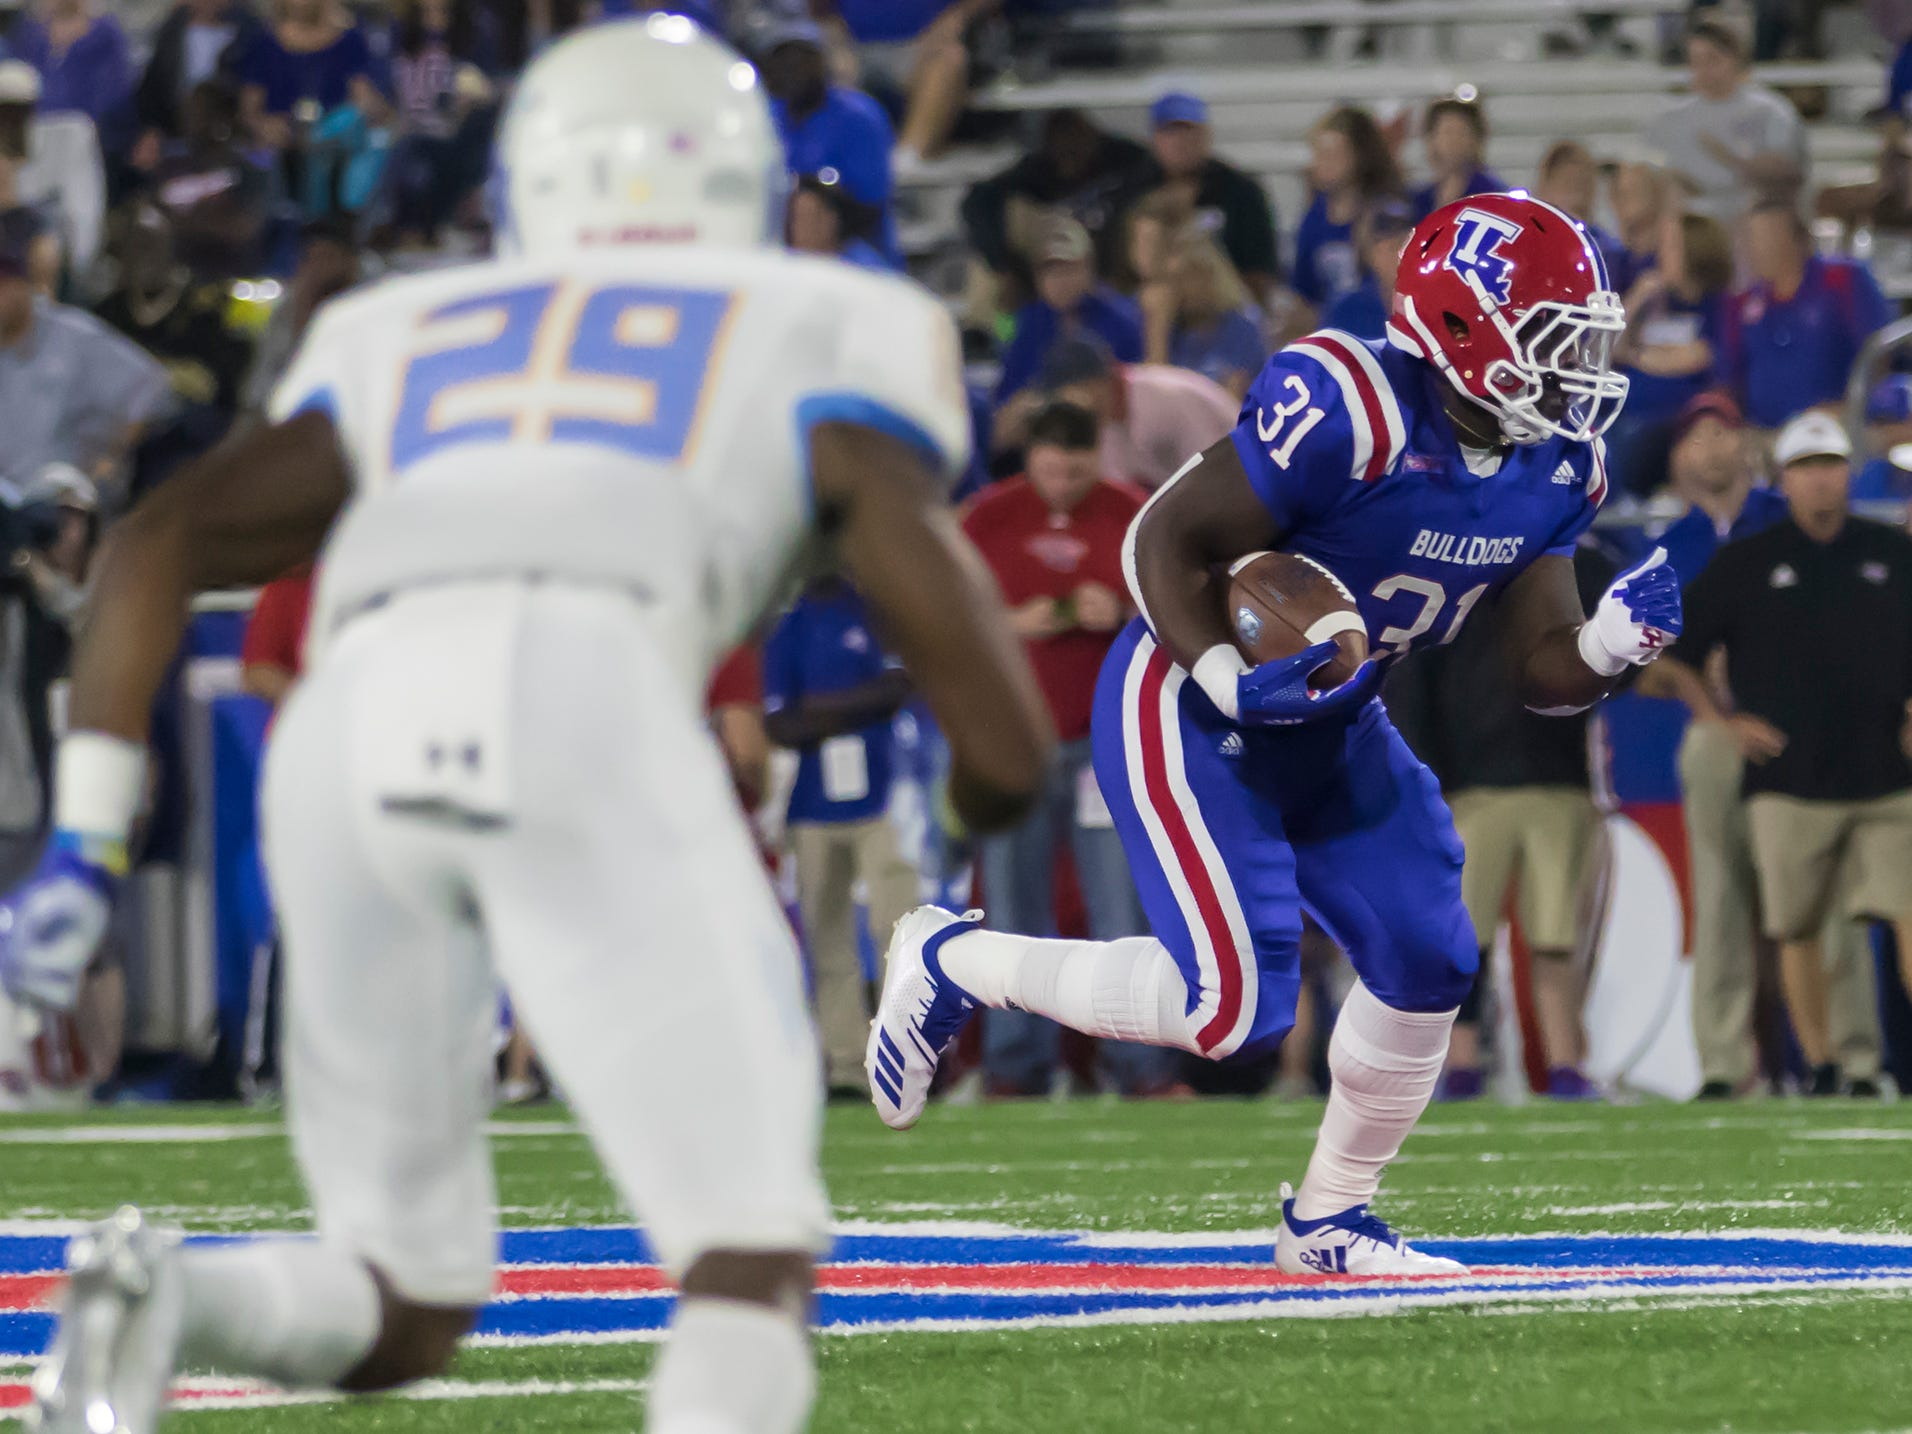 Louisiana Tech defeated Southern University in a 54-17 rout at Joe Aillet Stadium in Rustion, La. on Sept. 8